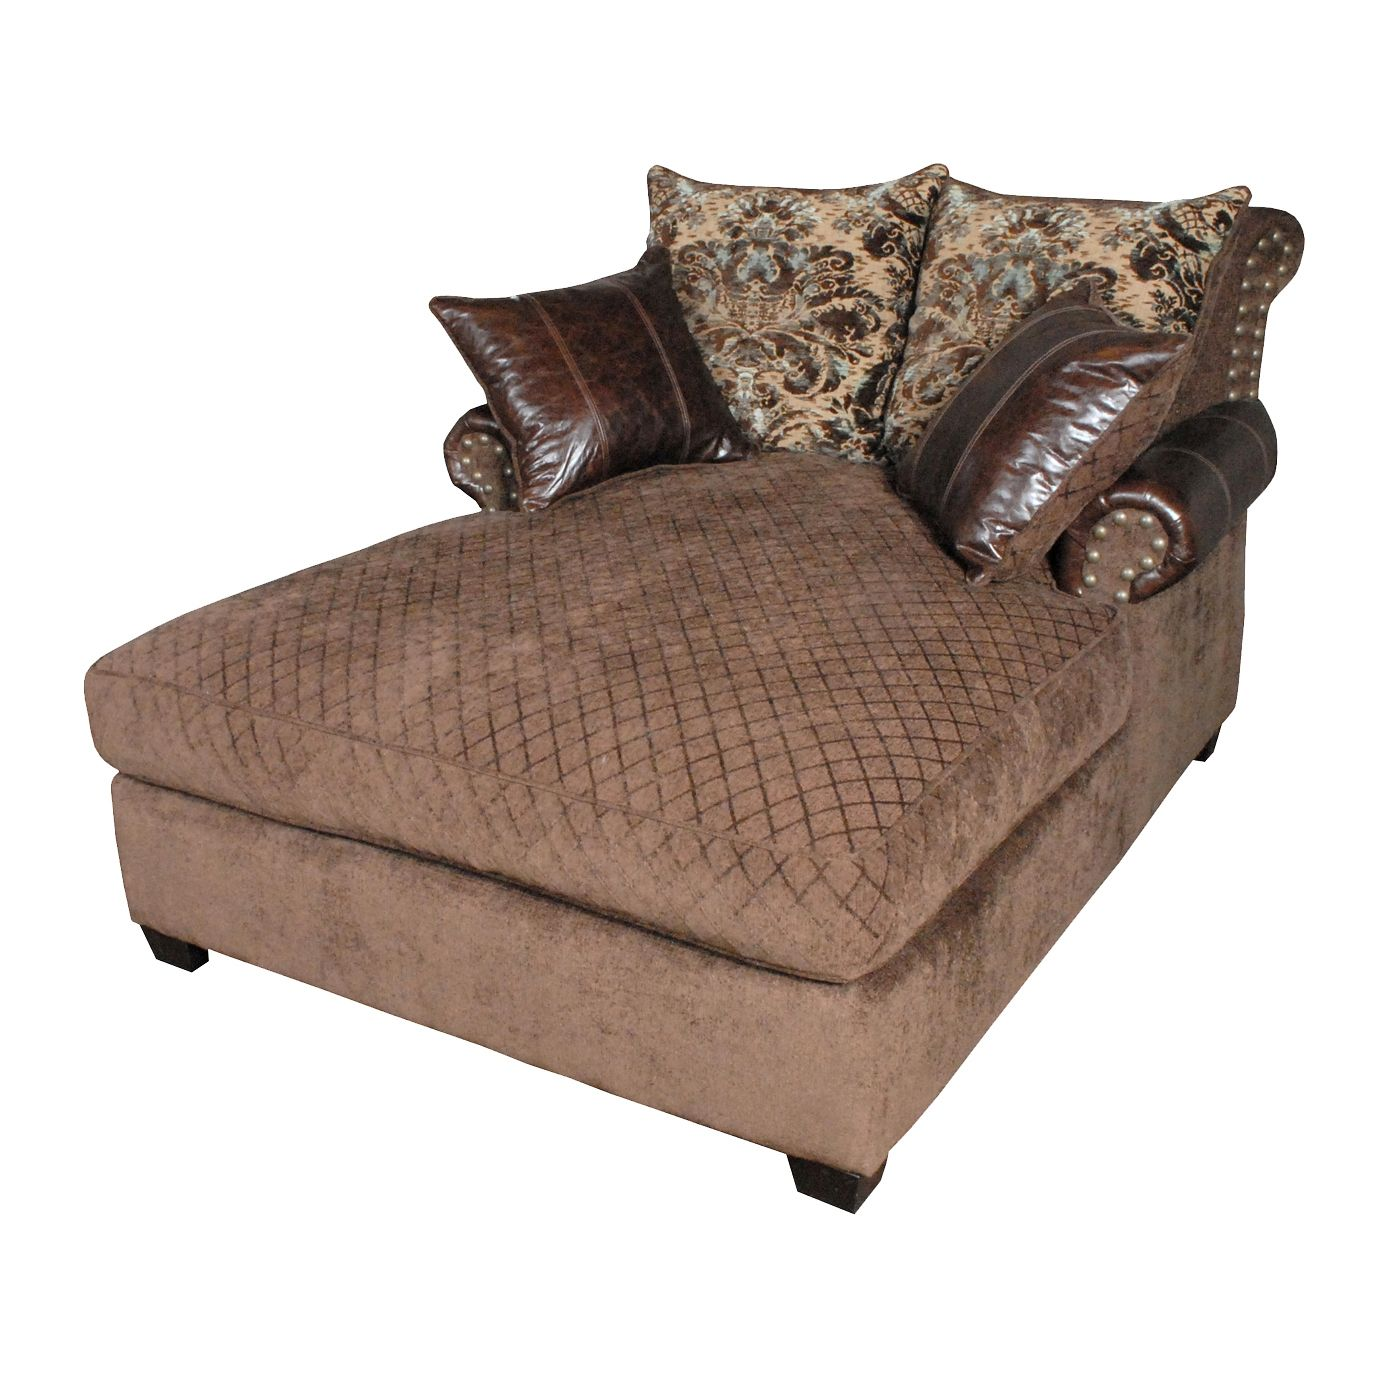 New Dimensions Bnibkc Brittany N King Chaise Home Furniture